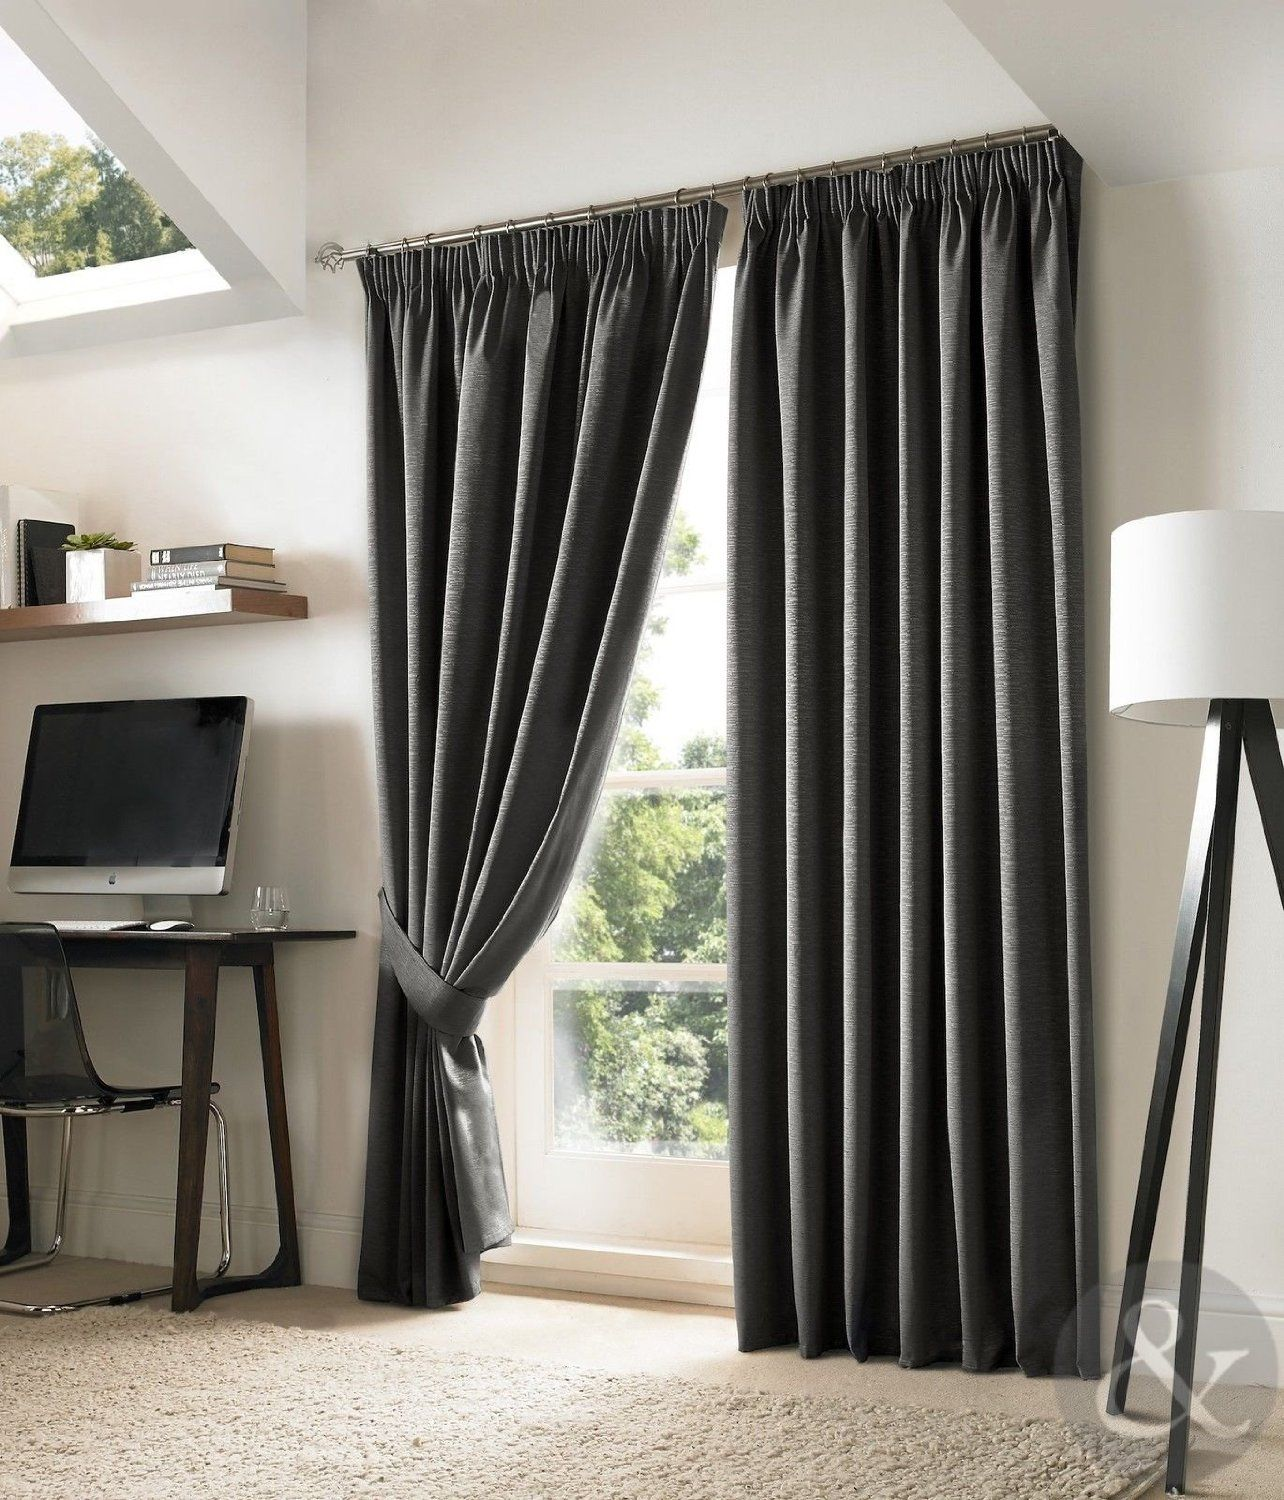 New Blackout Curtains Luxury Fully Lined Embroidered Pencil